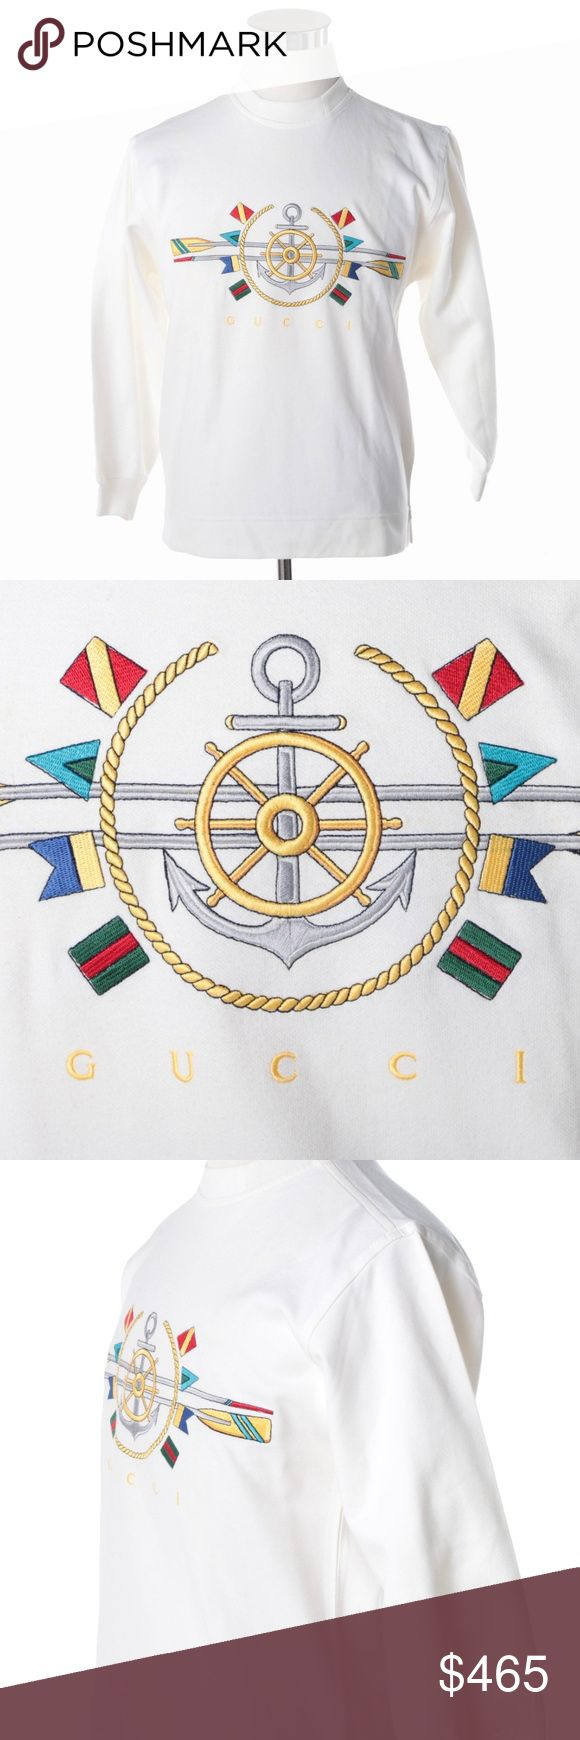 "NWT VINTAGE GUCCI Crewneck, Sweatshirt, White A Gucci white sweatshirt. The 100% cotton sweatshirt has a crew neck and includes a colorful embroidered nautical motif and ""Gucci"" in yellow letters. The maker's label and hang tags are present to the interior.  CONDITION  Good  Has attached hang tags.  If you hold it up to light you can see a small discoloraton but it's not visible from the outside or when on.   Size: Small Gucci Sweaters Crew & Scoop Necks"